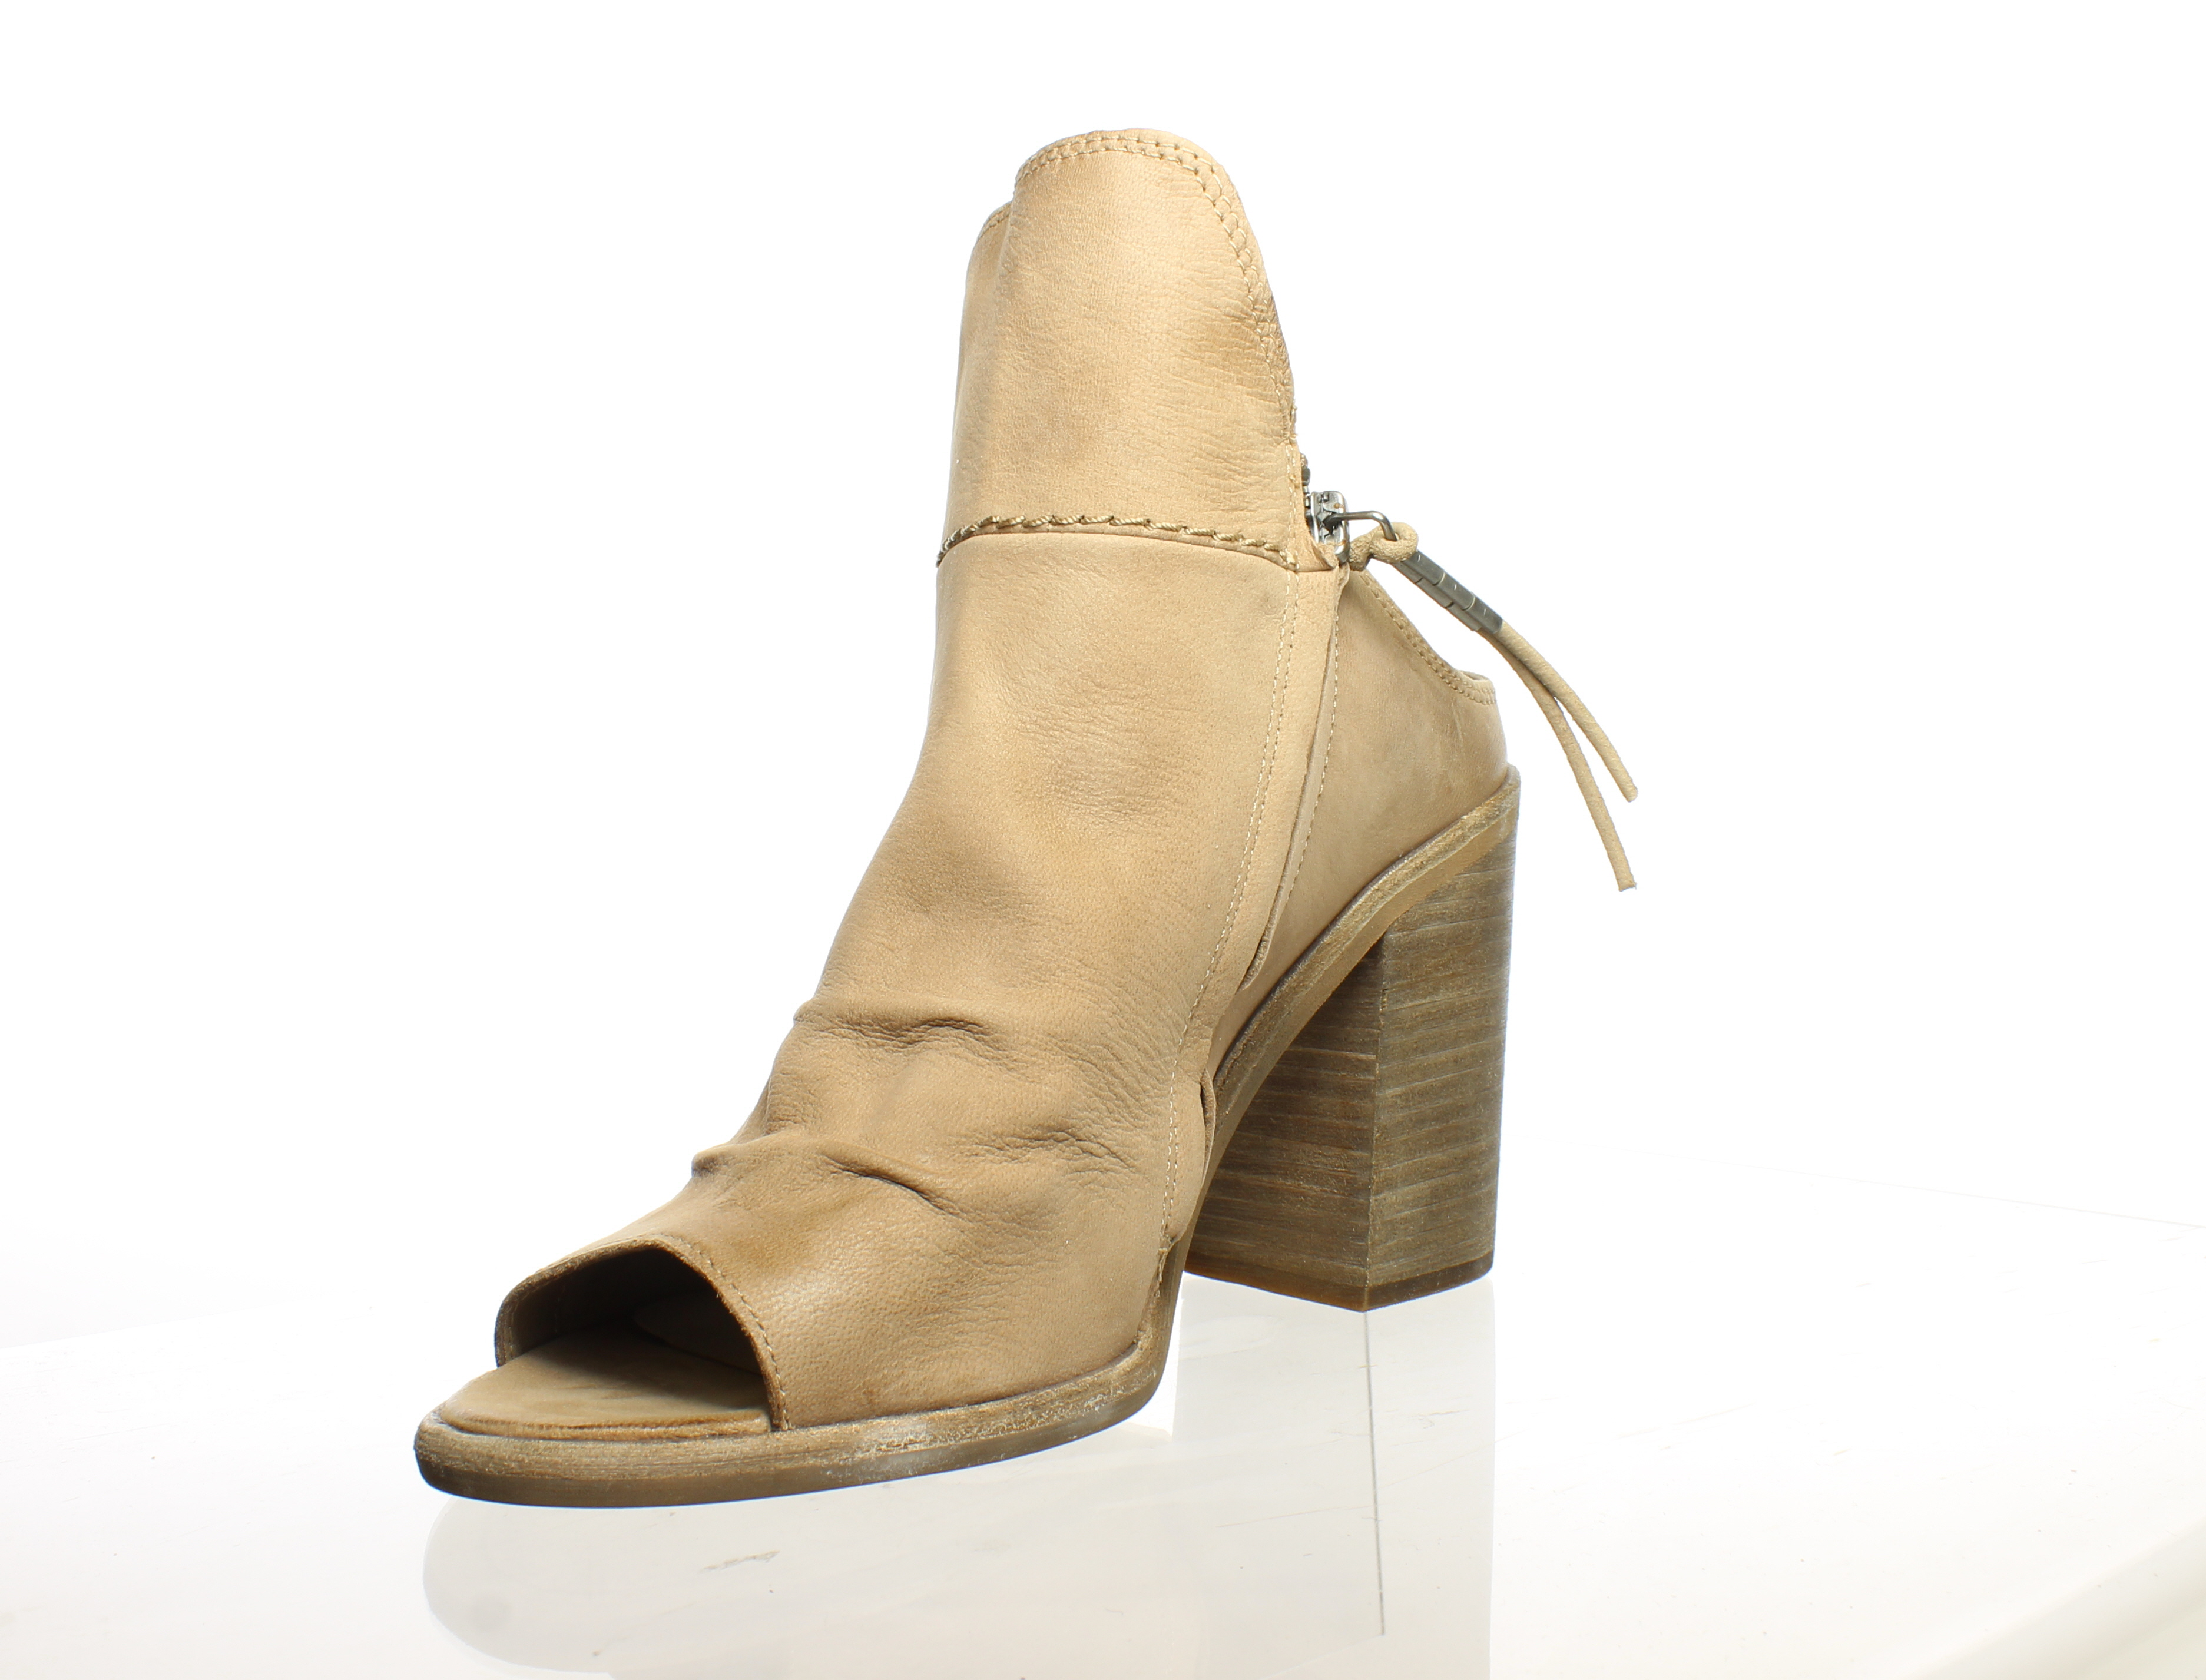 0ee4db7709dd Dolce Vita Womens Lennox Light Taupe Open Toe Booties Size 8.5 ...